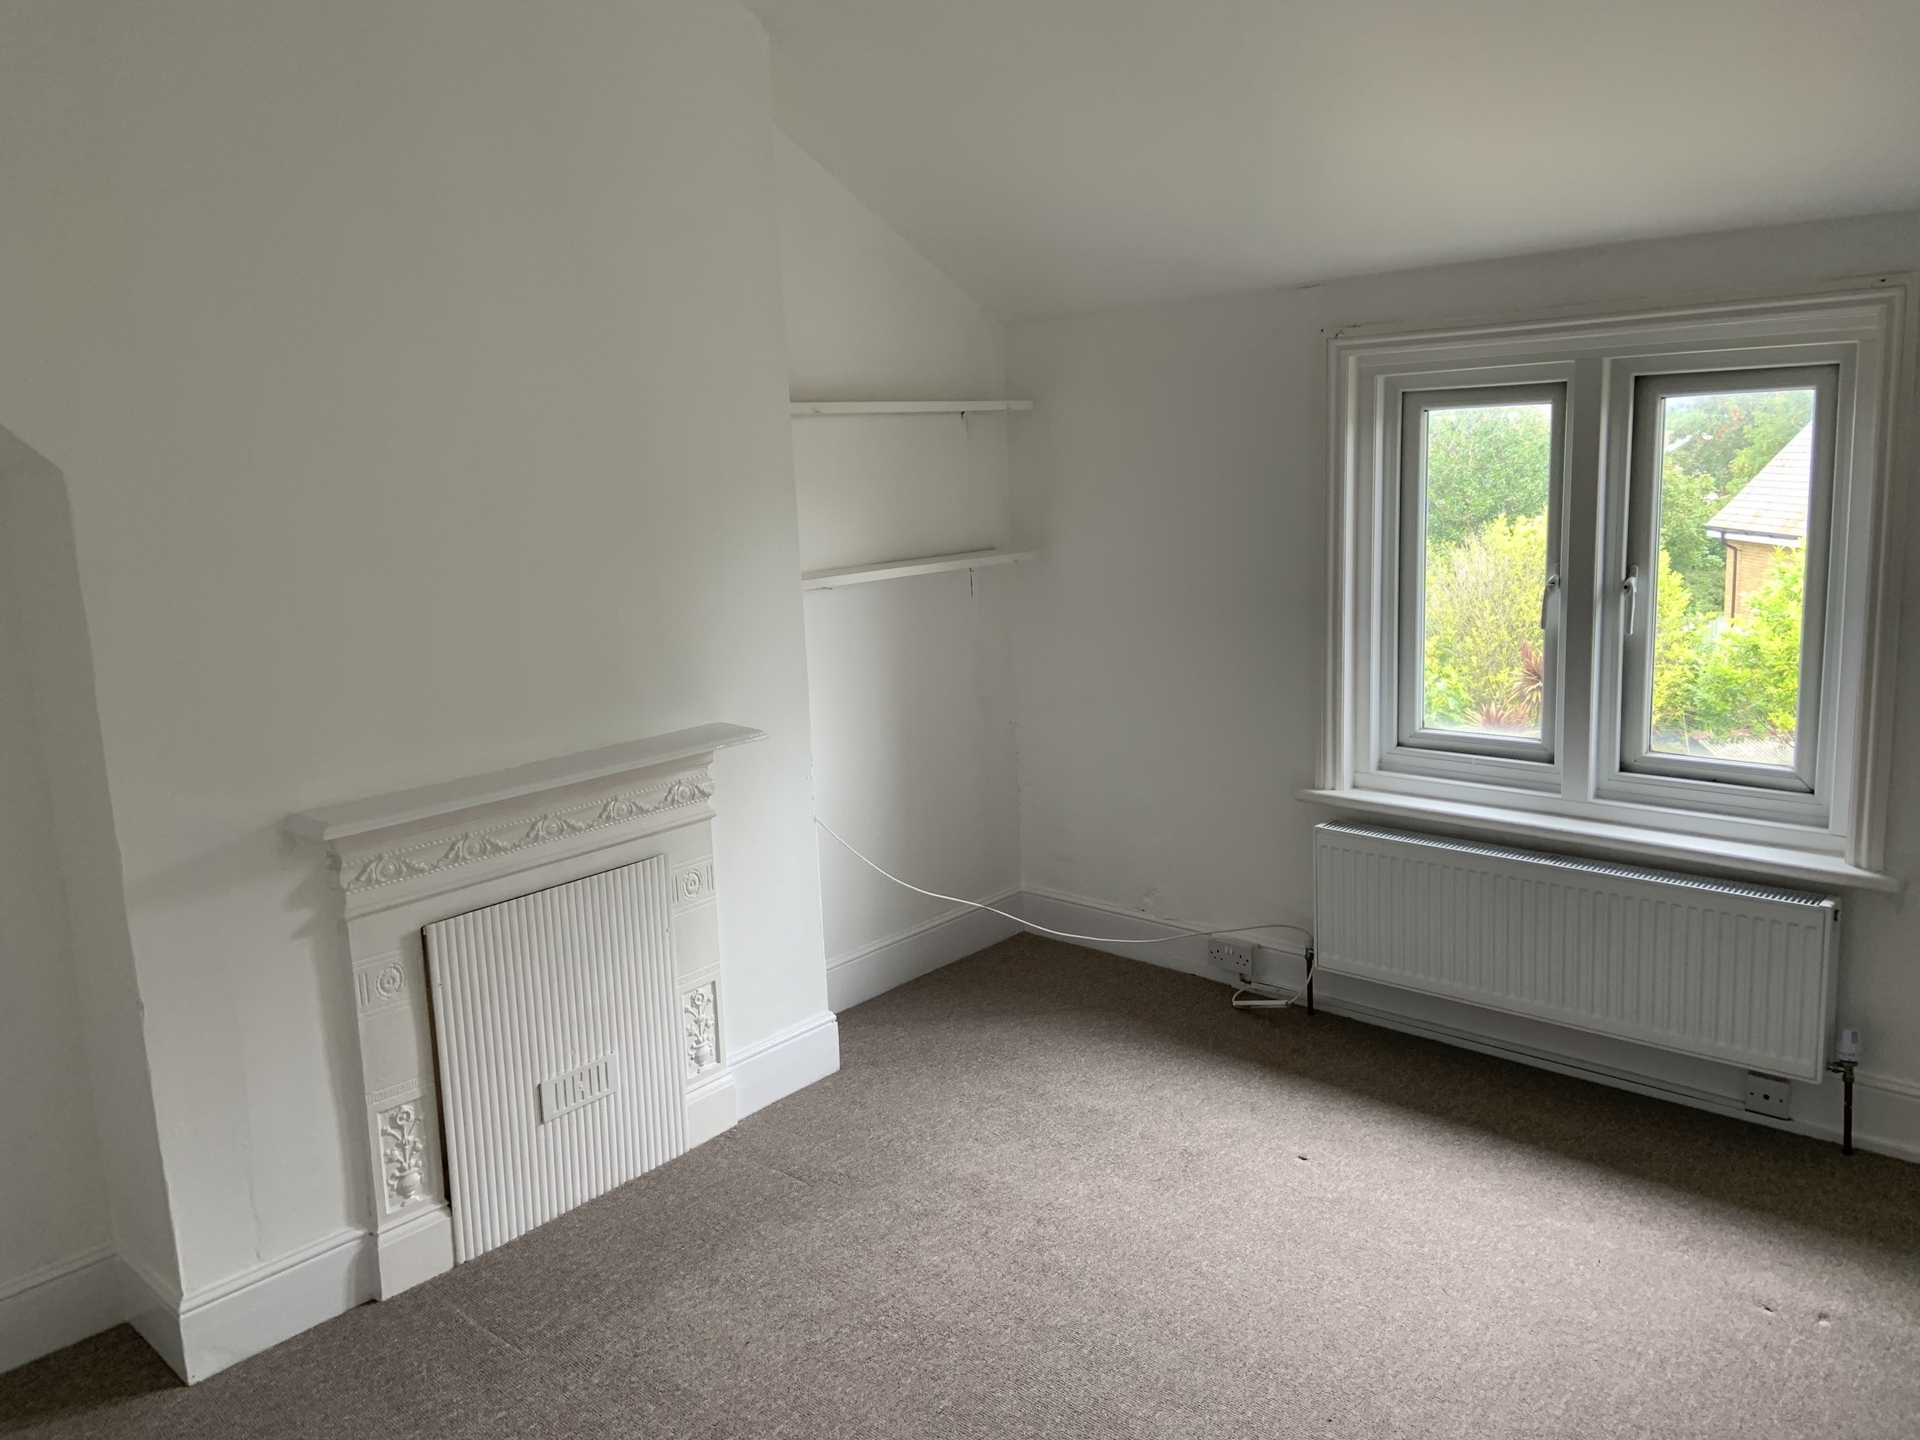 3 bed flat to rent in Station Approach, Birchington 4